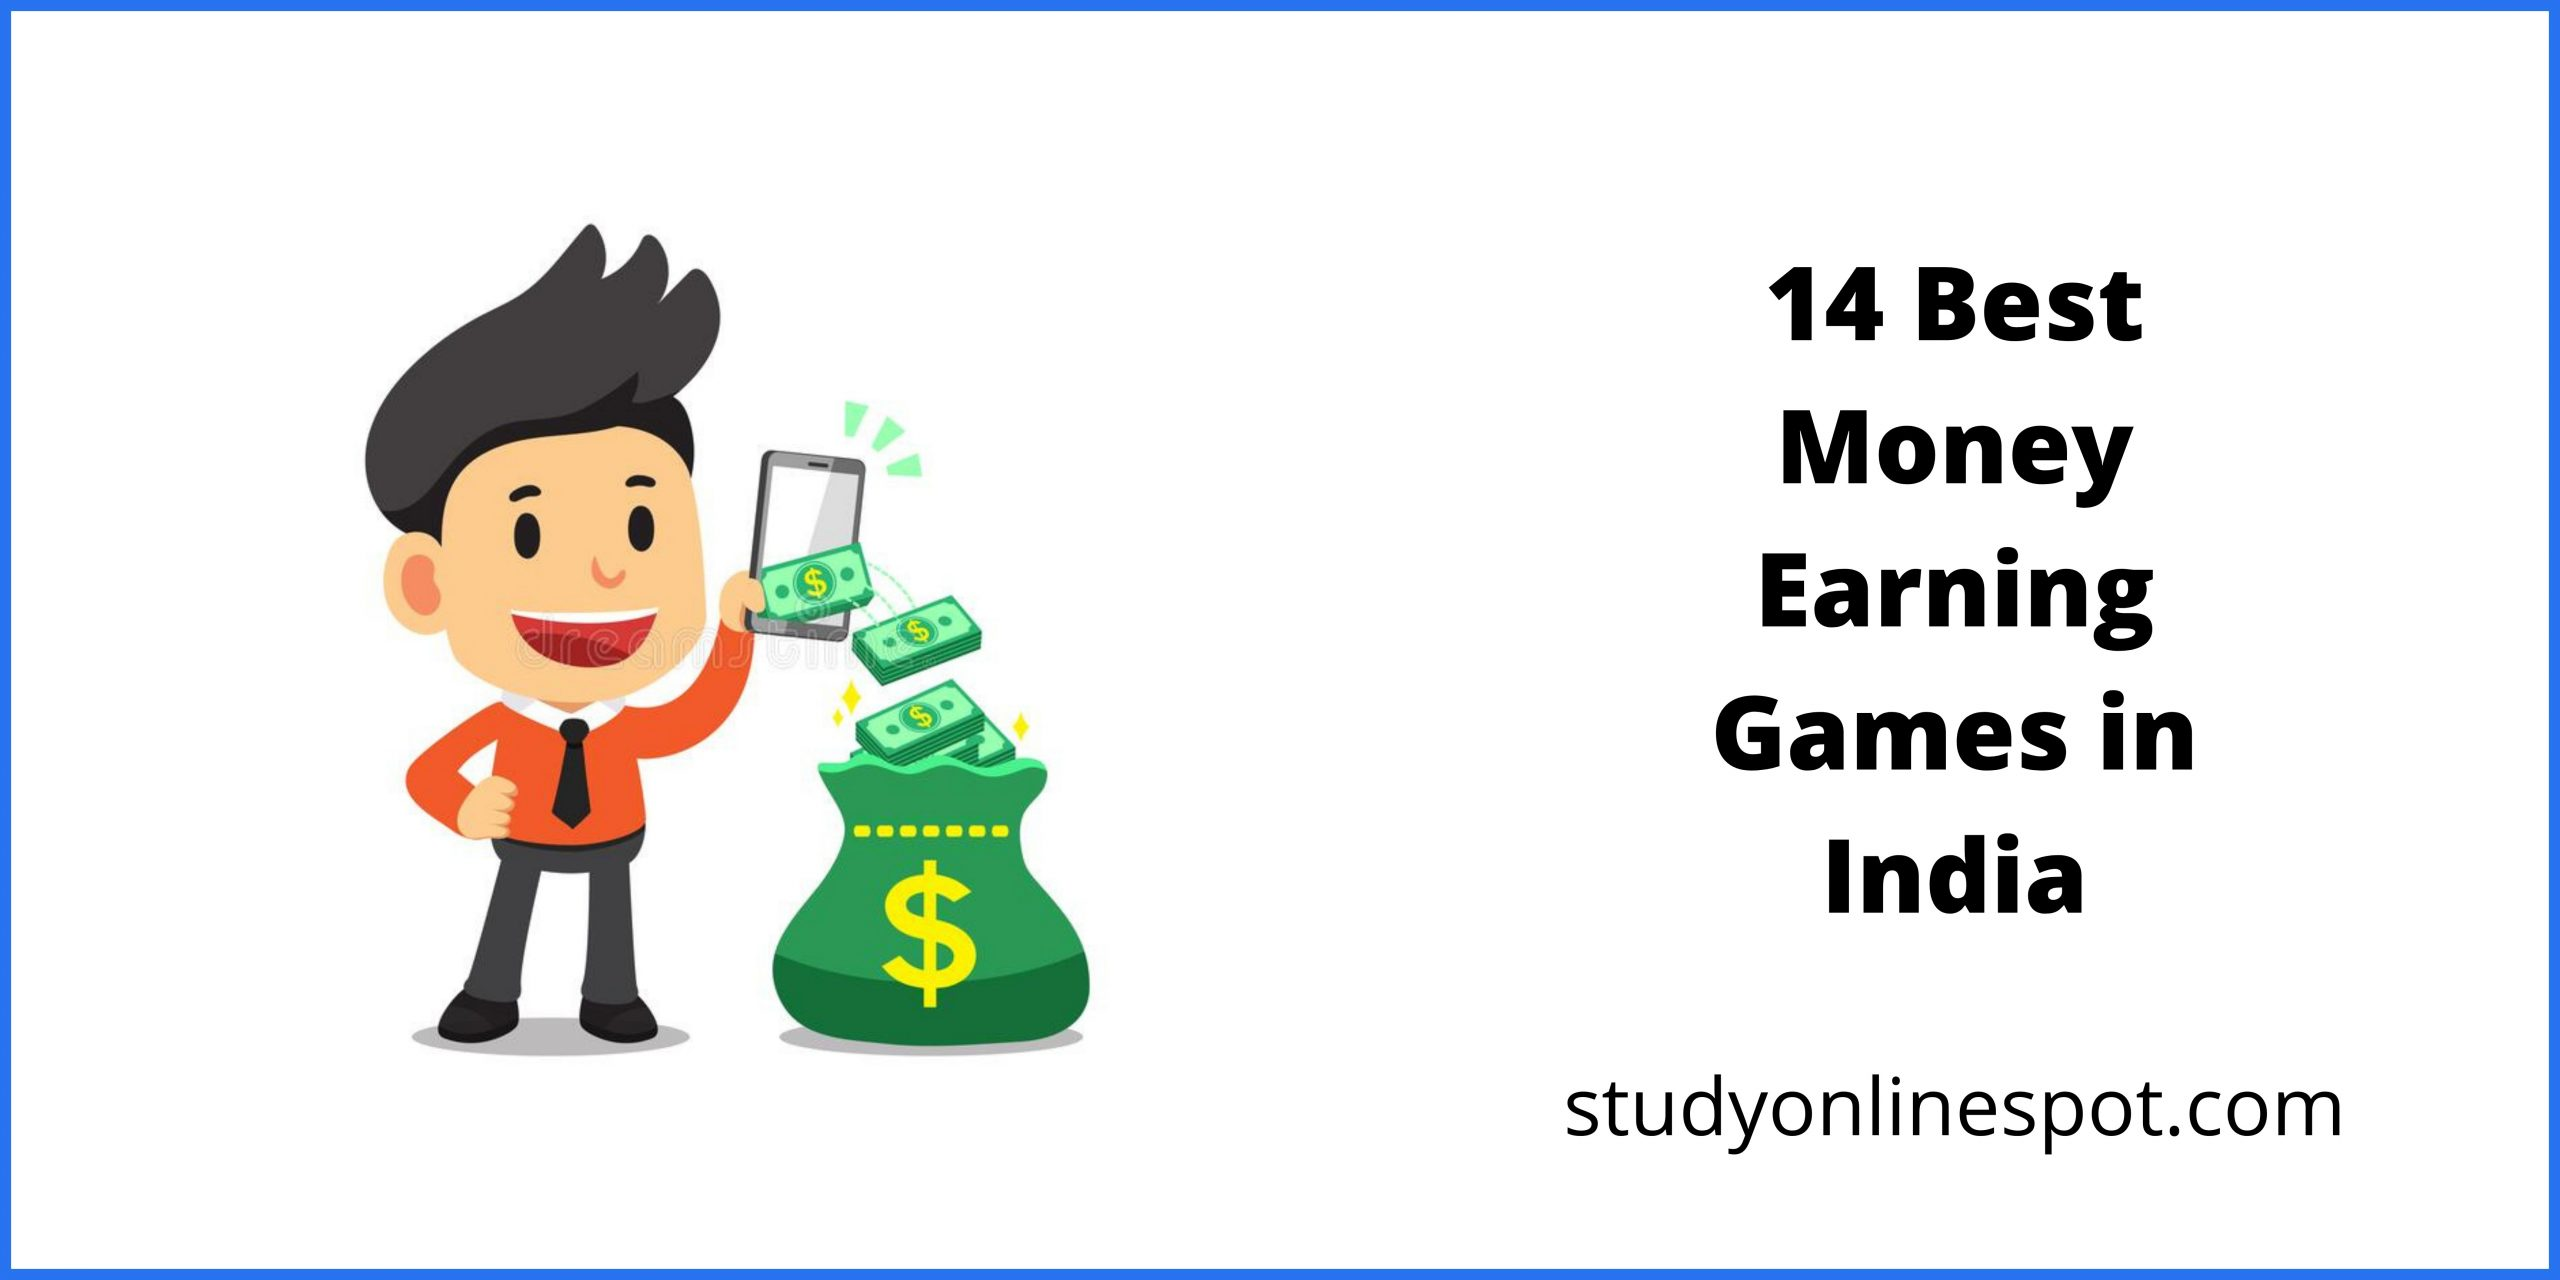 14 Best Money Earning Games in India